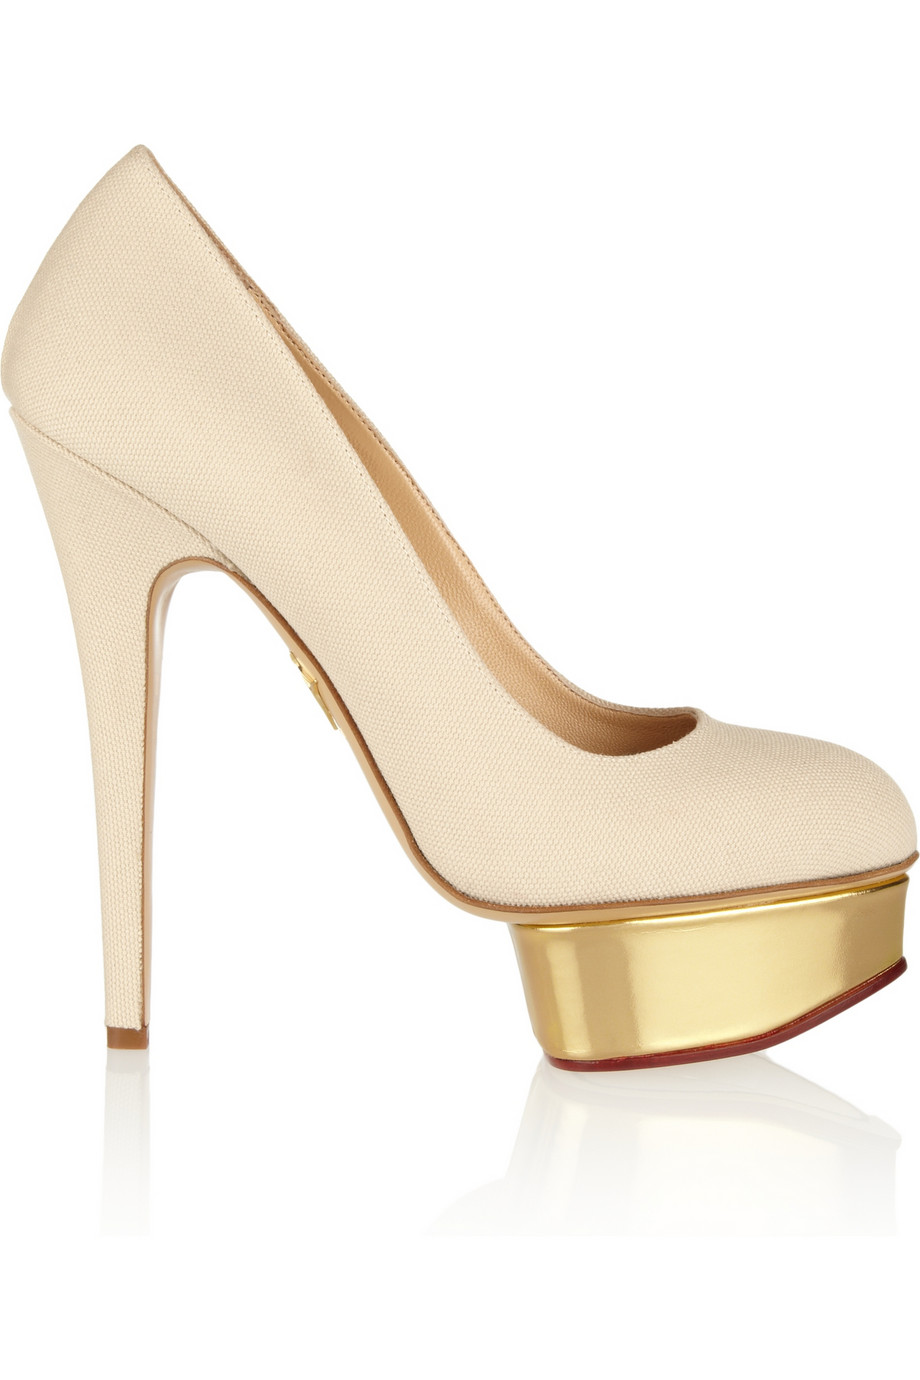 b340a194602 Lyst - Charlotte Olympia The Dolly Canvas and Leather Platform Pumps ...